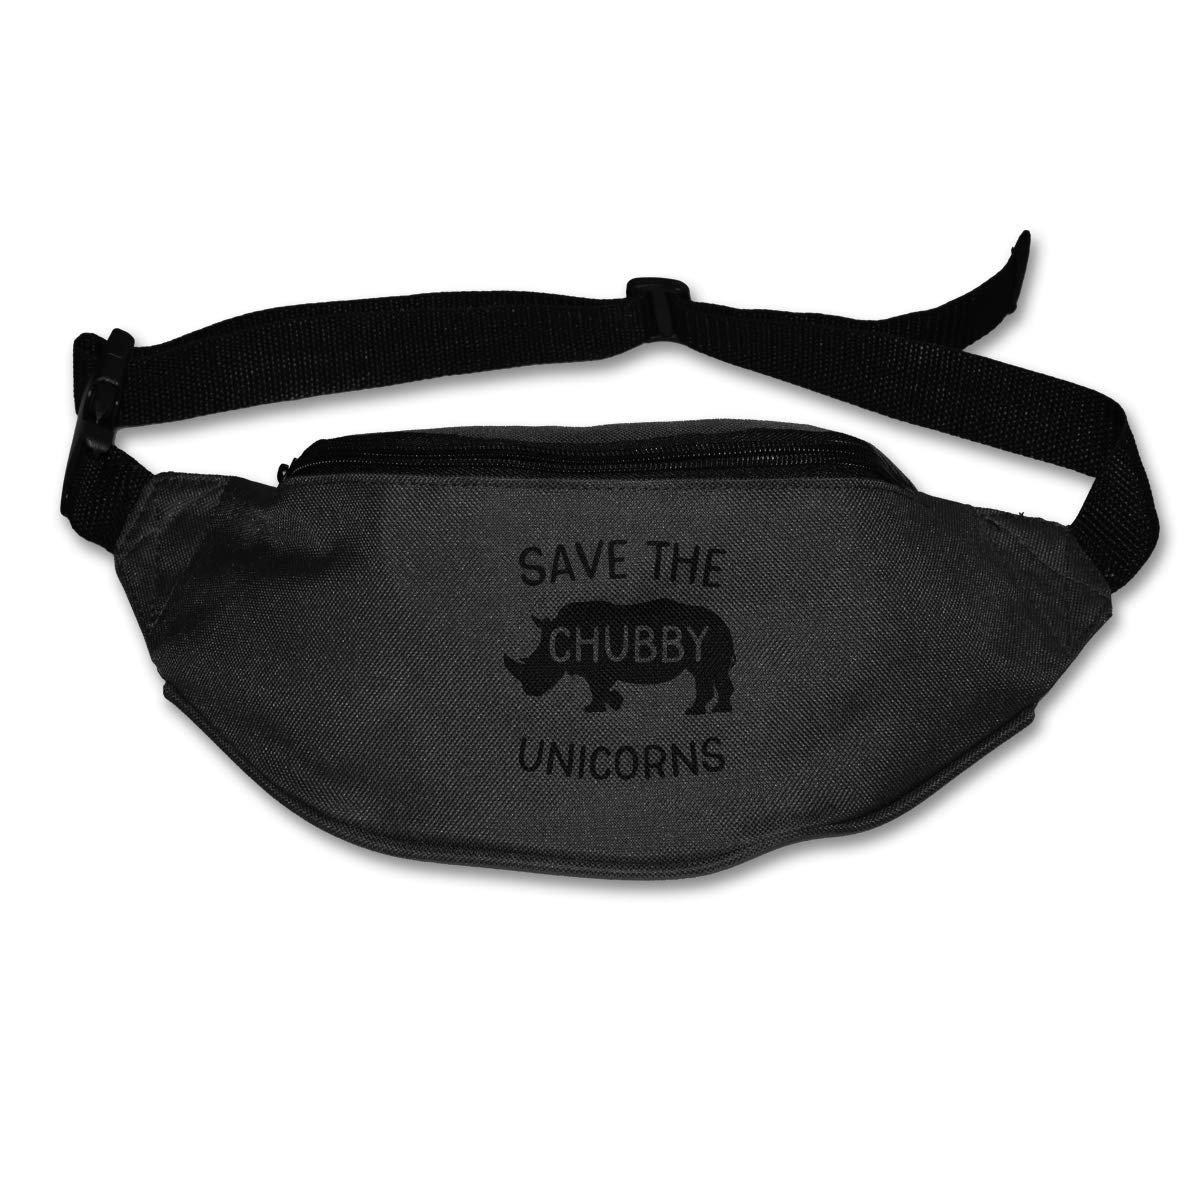 Save The Chubby Unicorns Sport Waist Pack Fanny Pack Adjustable For Hike